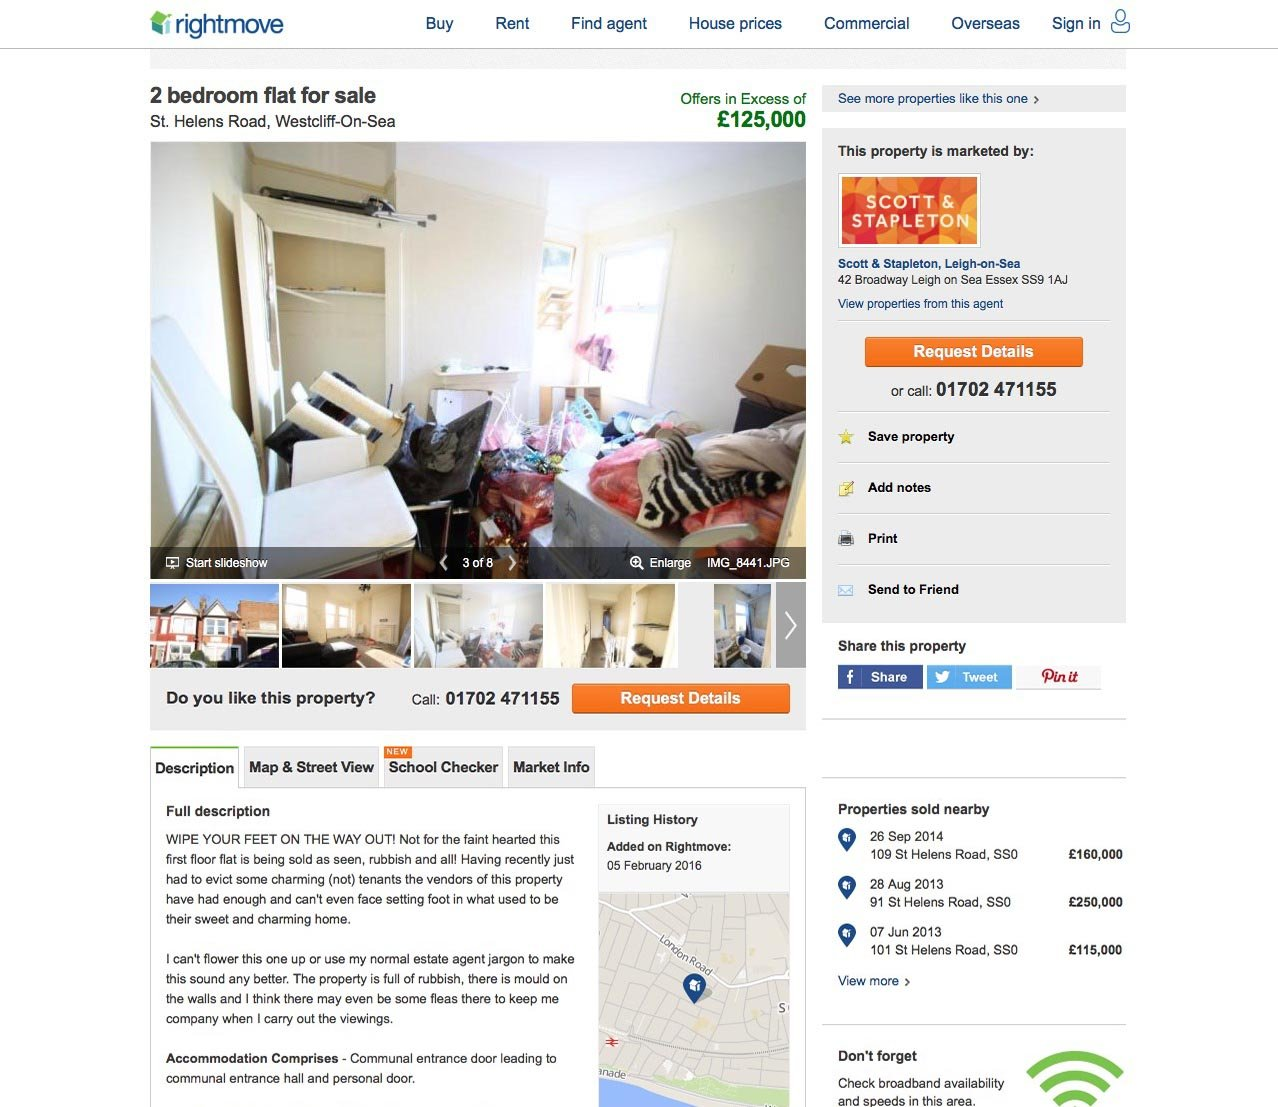 """Date: February 9 2016nLocation: Westcliff-on-Sea, Essex, England.nA two-bed flat sold within three days despite an honest estate agent telling potential buyers to """"wipe your feet on the way out"""".nIn a candid Rightmove advert, estate agents Scott & Stapleton, based in Leigh-on-Sea, Essex, told buyers the flat ¿ on the market for £125,000 ¿ was being sold complete with mouldy walls, mounds of rubbish and """"fleas to keep you company"""".nPictured: The listing as it appeared on Rightmove."""